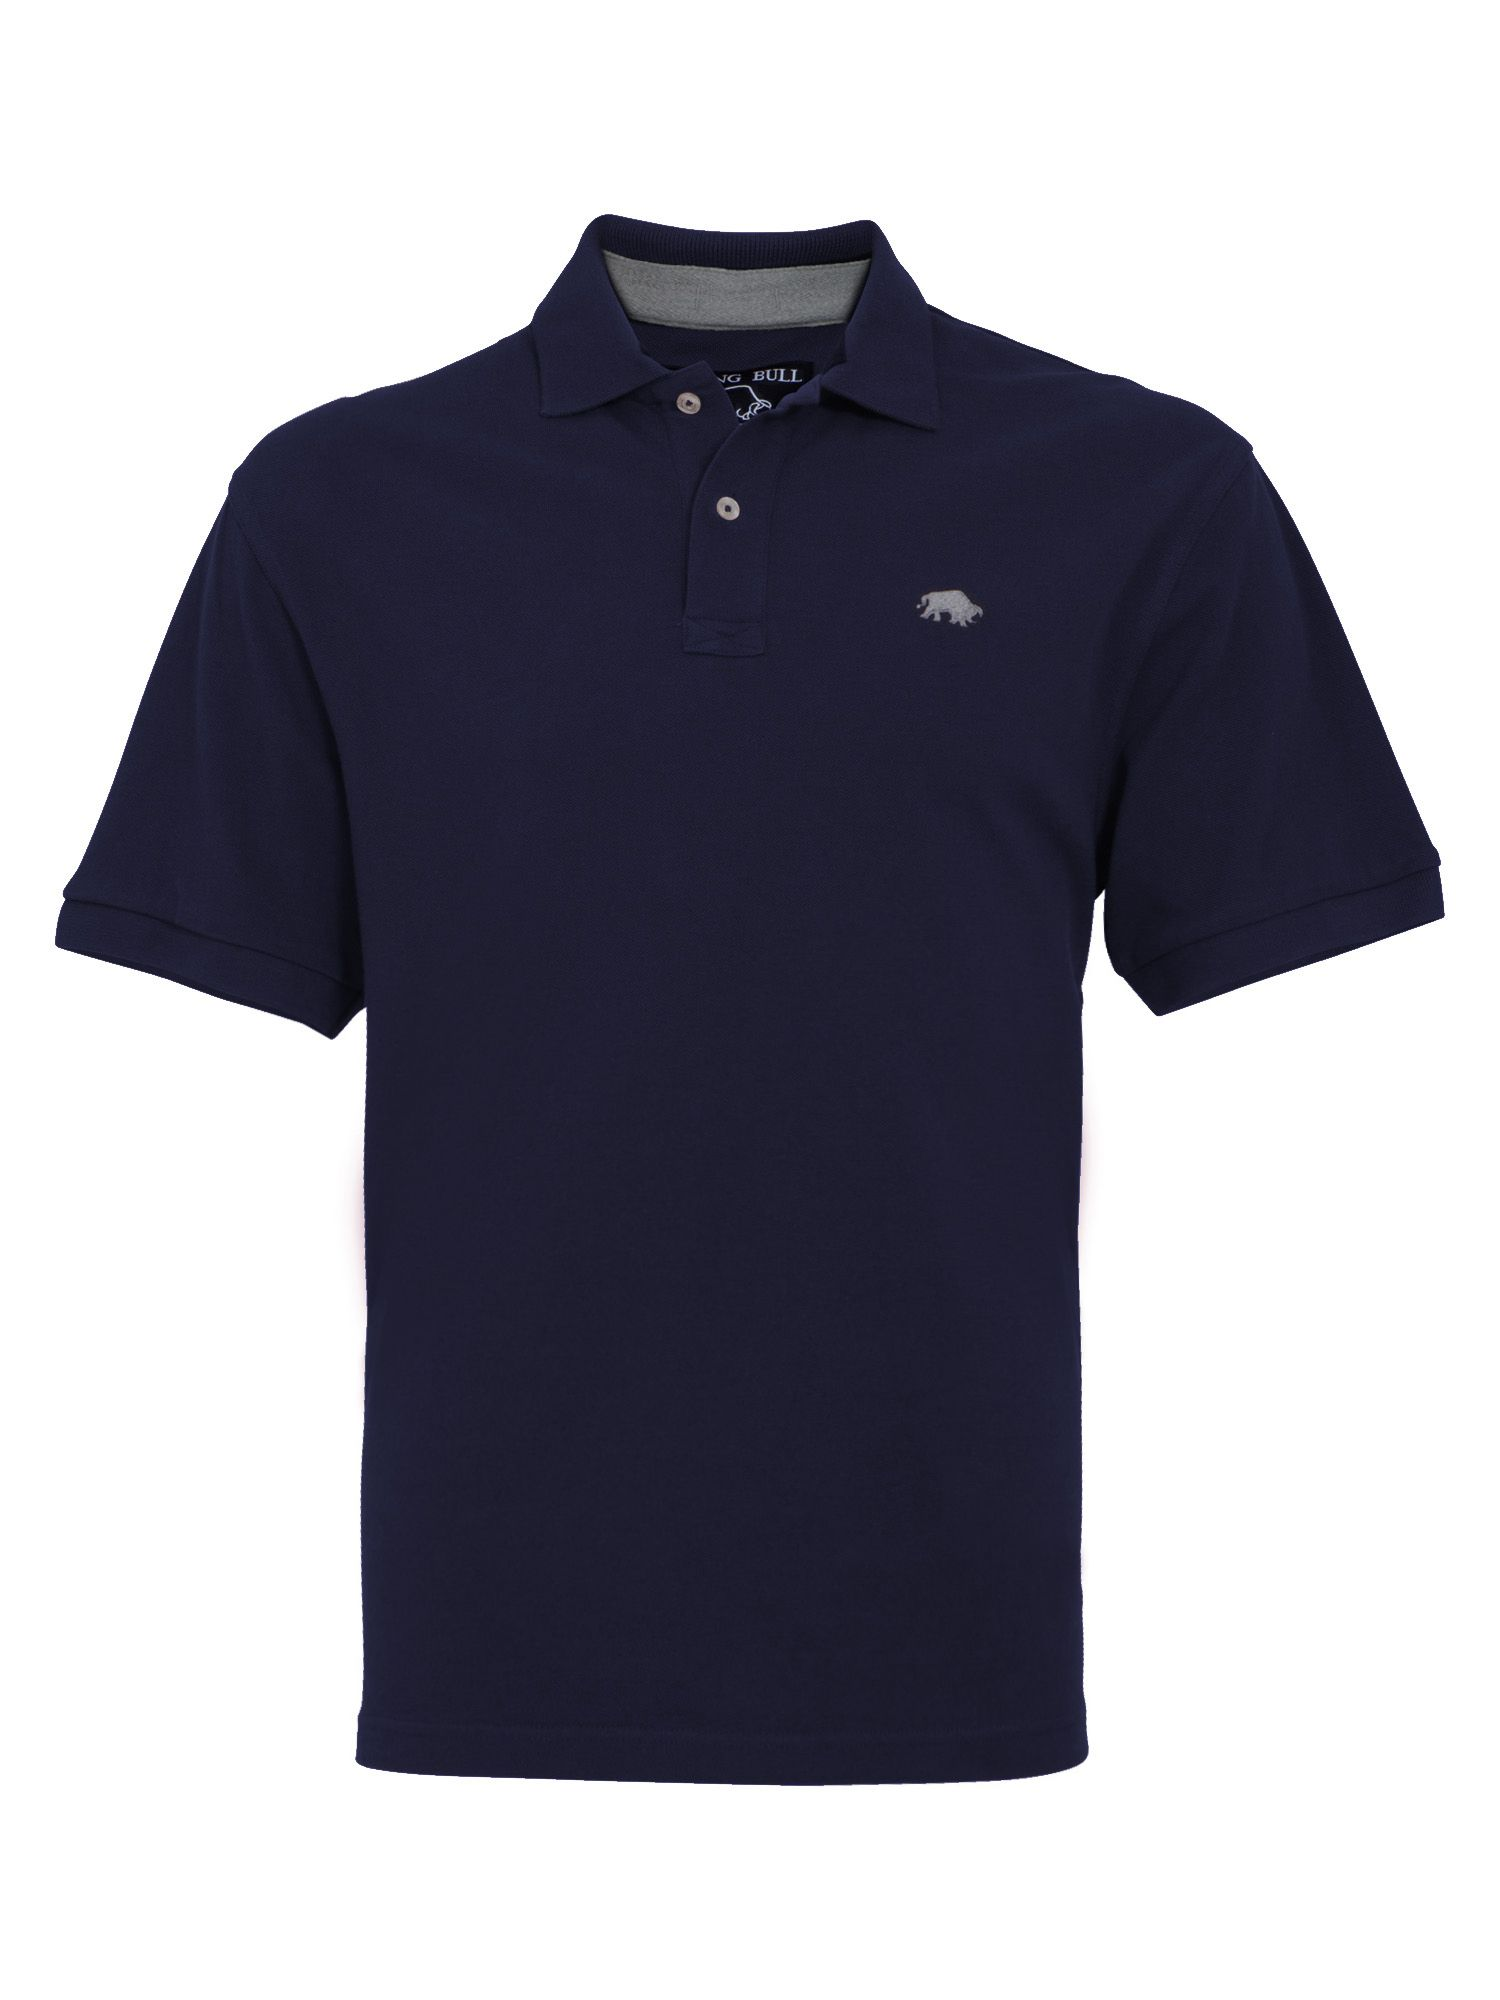 Men's Raging Bull New Signature Polo Shirt, Blue